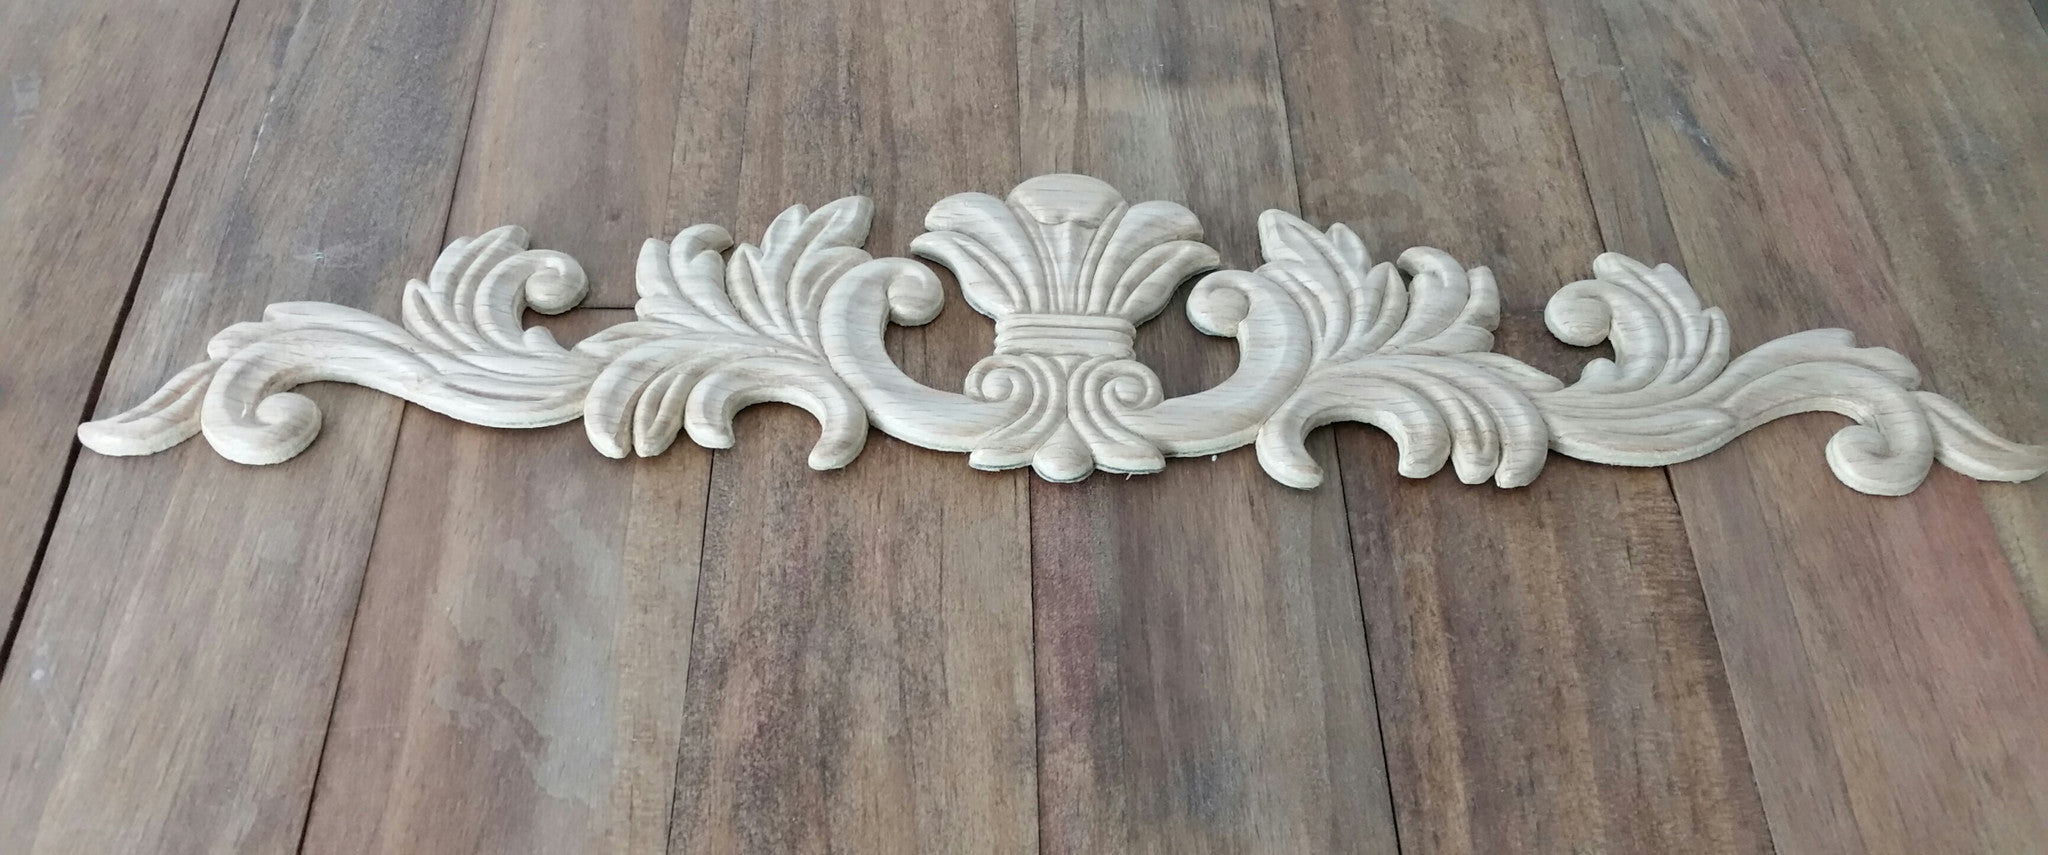 Royal Crown Applique - The Chippy Barn